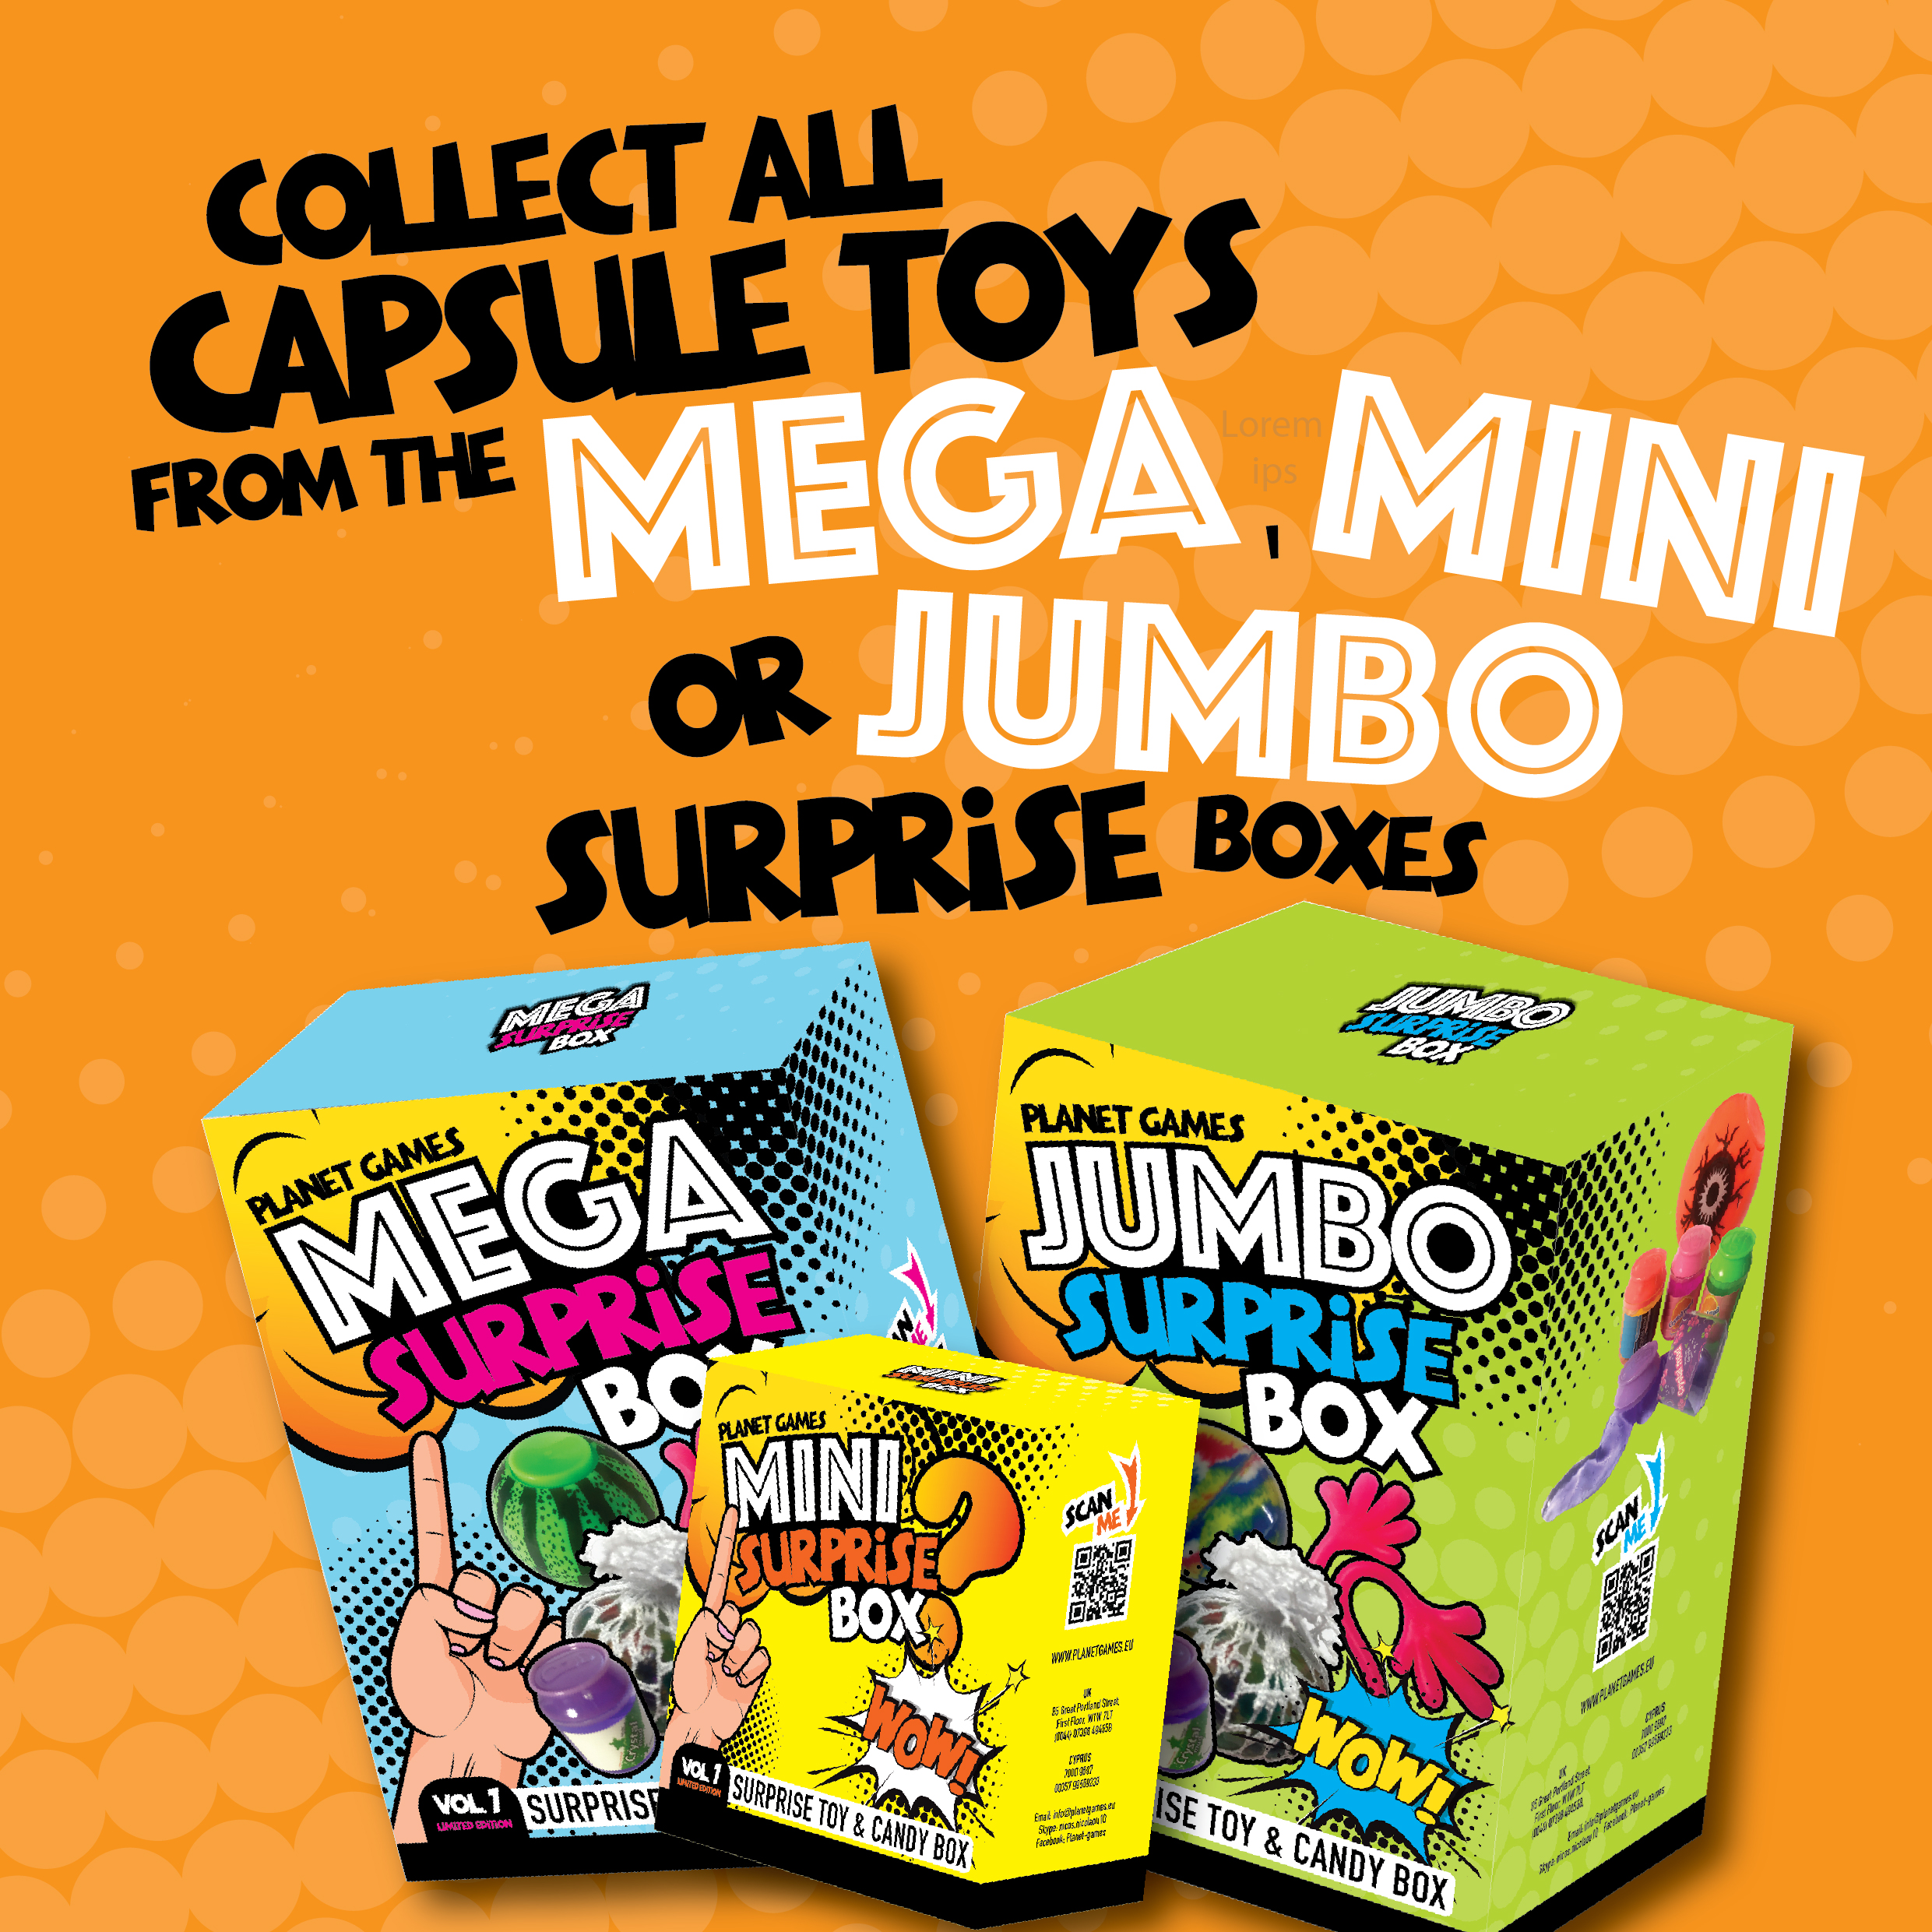 Mega and Jumbo surprise mystery boxes!